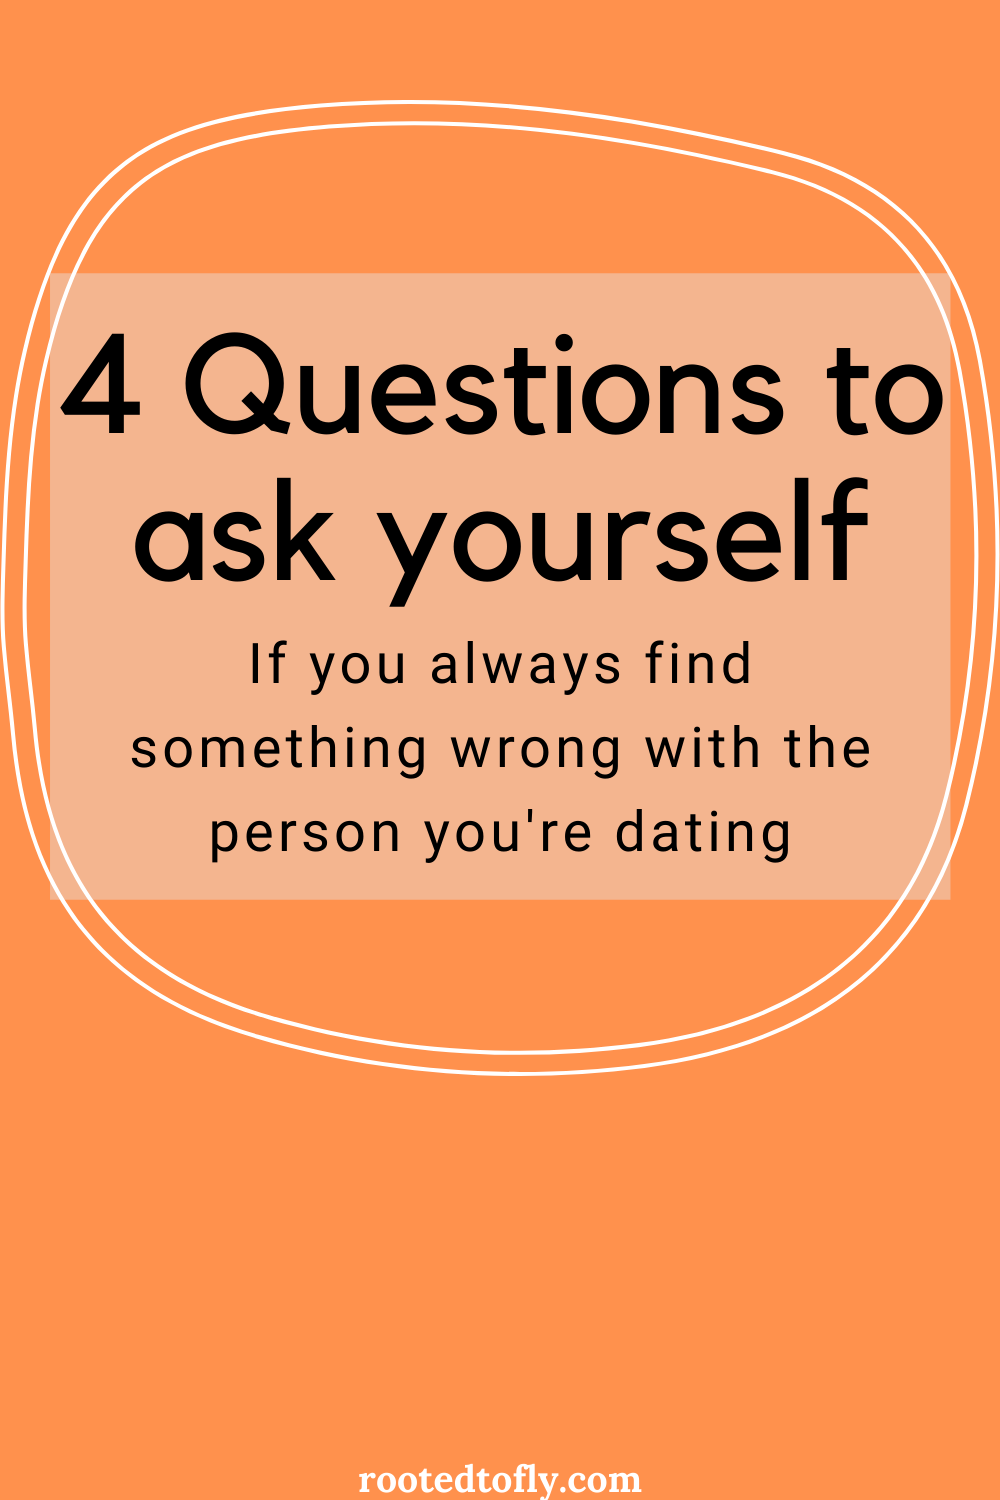 Do You Always Find Something Wrong With The Person You Re Dating Marriage Counseling Self Exploration This Or That Questions